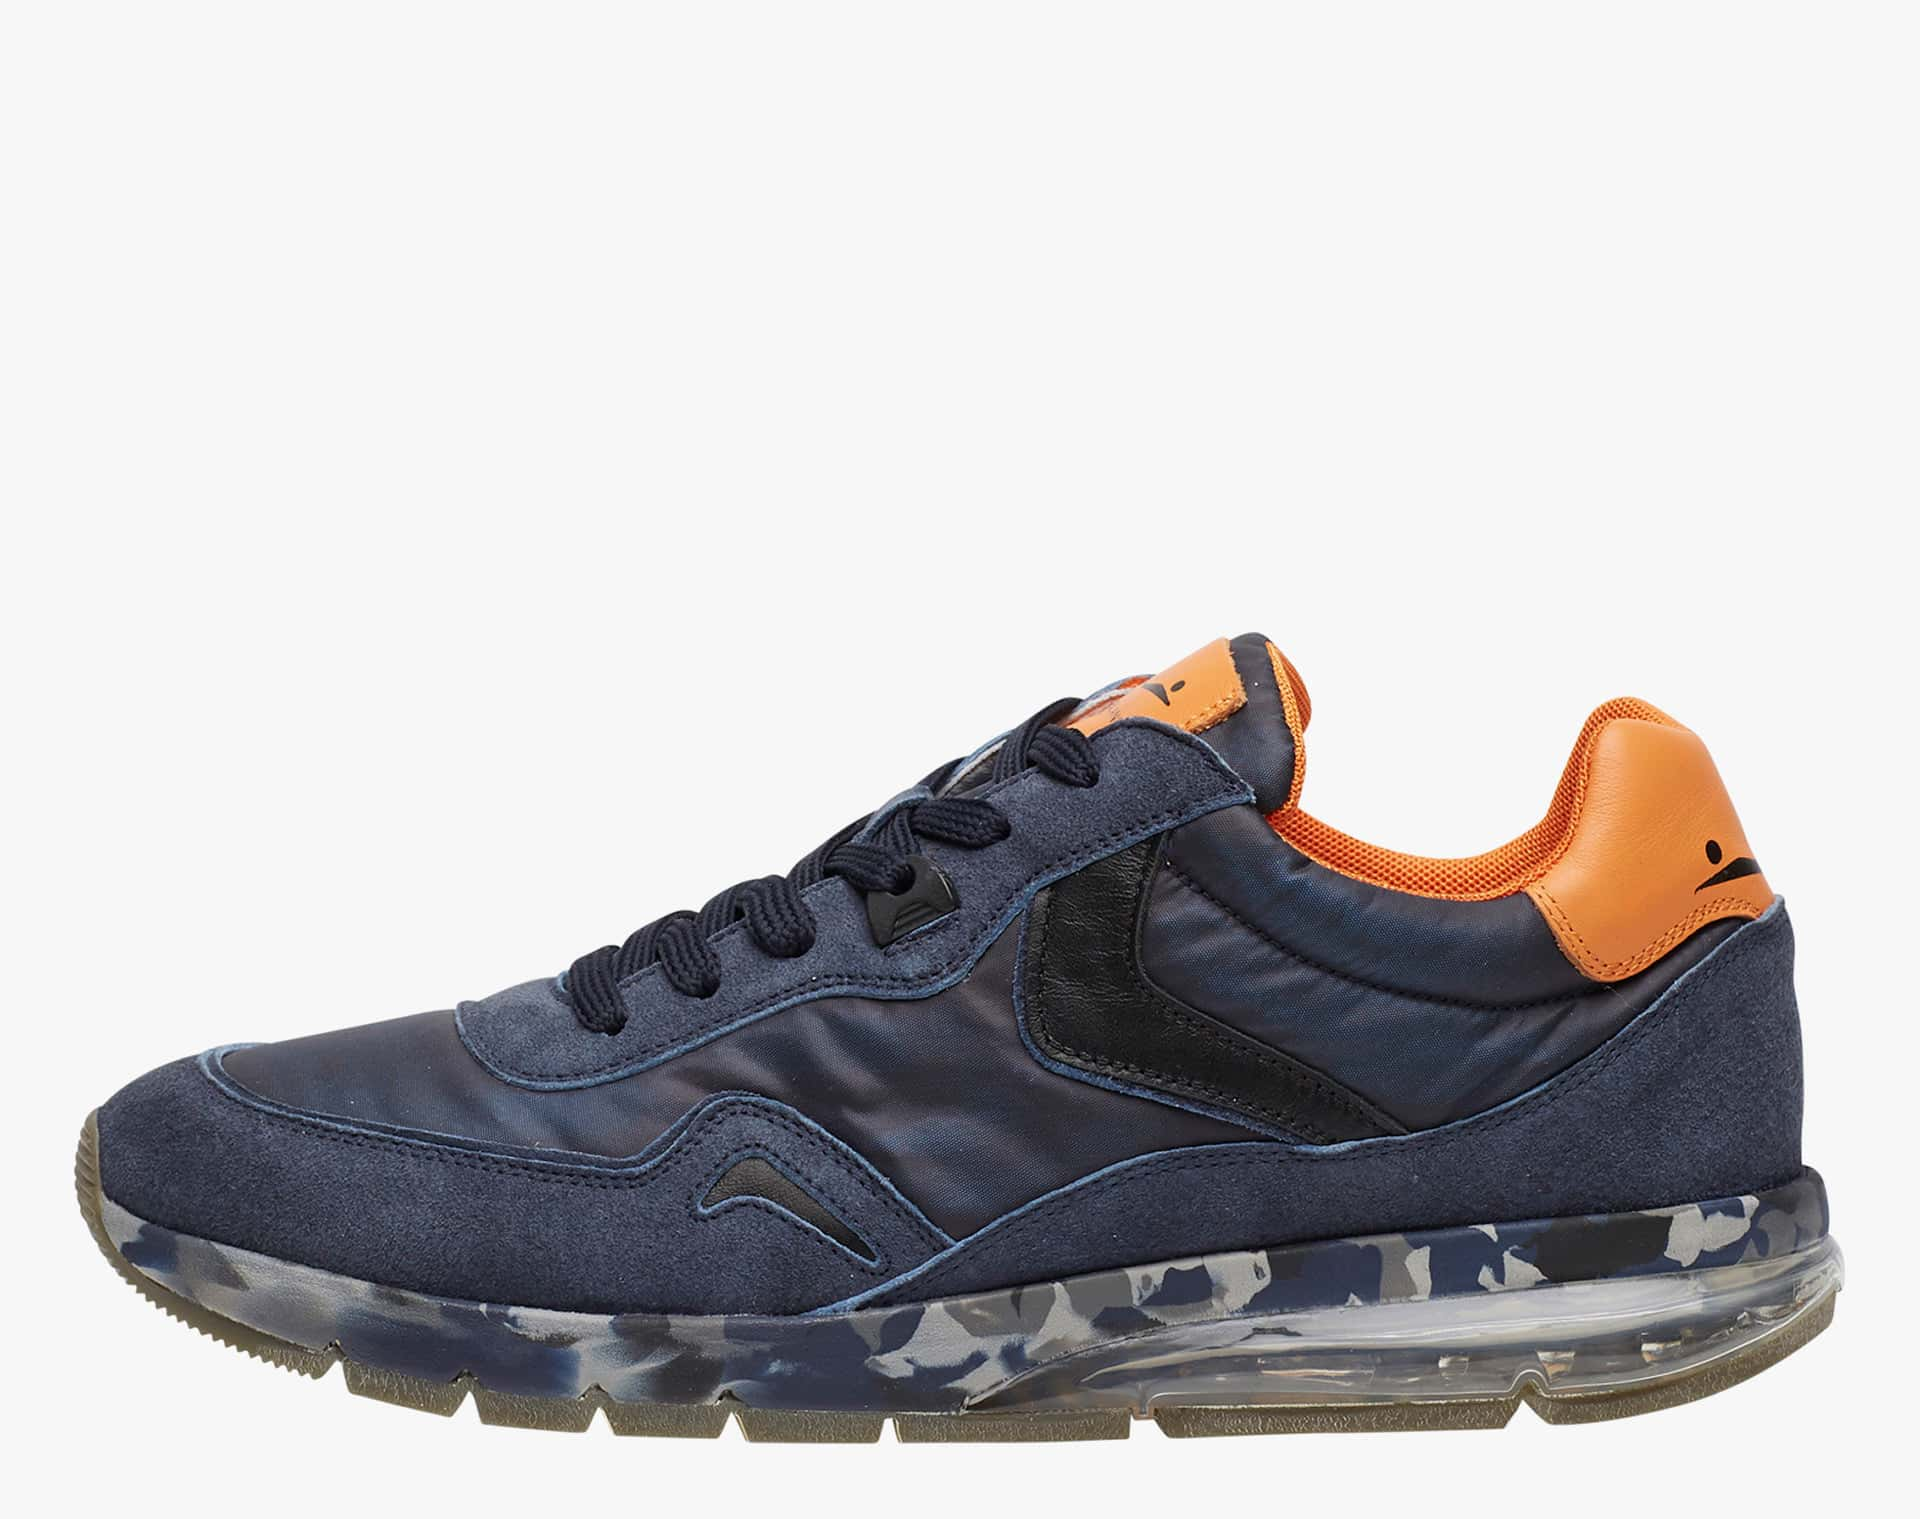 ENDAVOUR - Sneakers in leather and nylon - Blue-Black